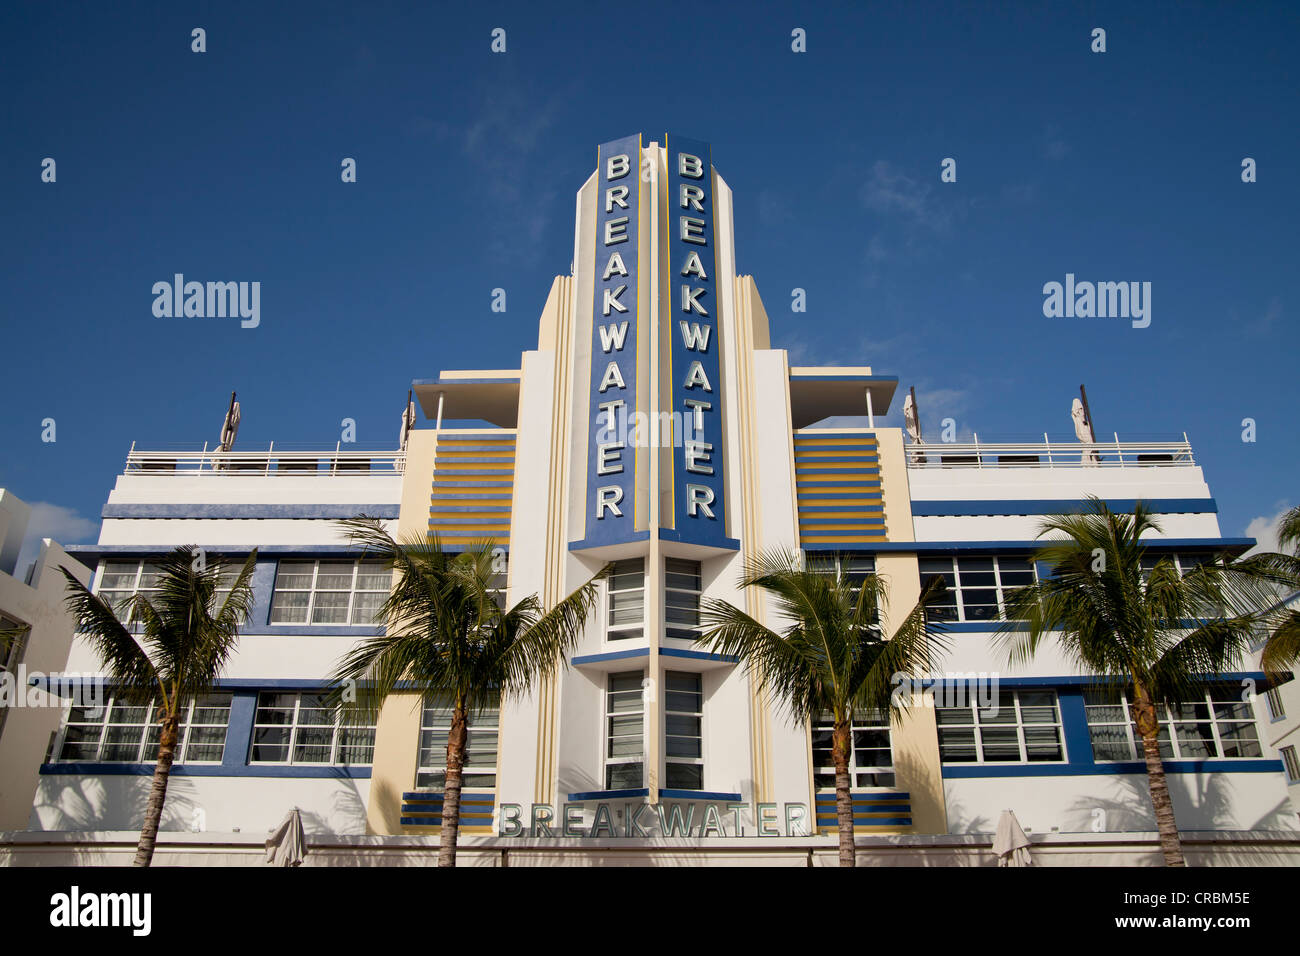 Famous Art Deco Hotels South Beach